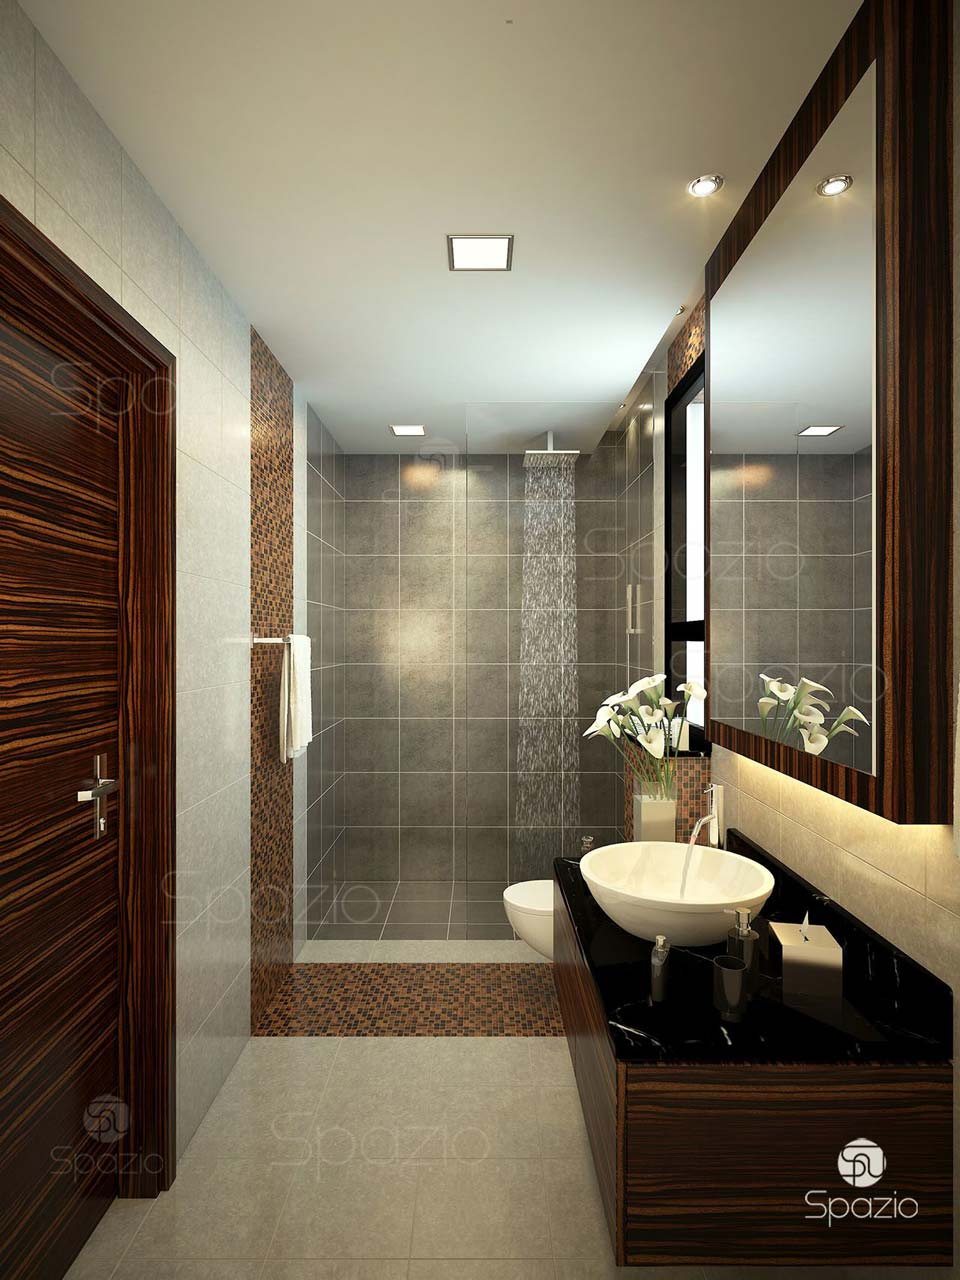 Bathroom design in dubai bathroom designs 2018 spazio Bathroom design in master bedroom